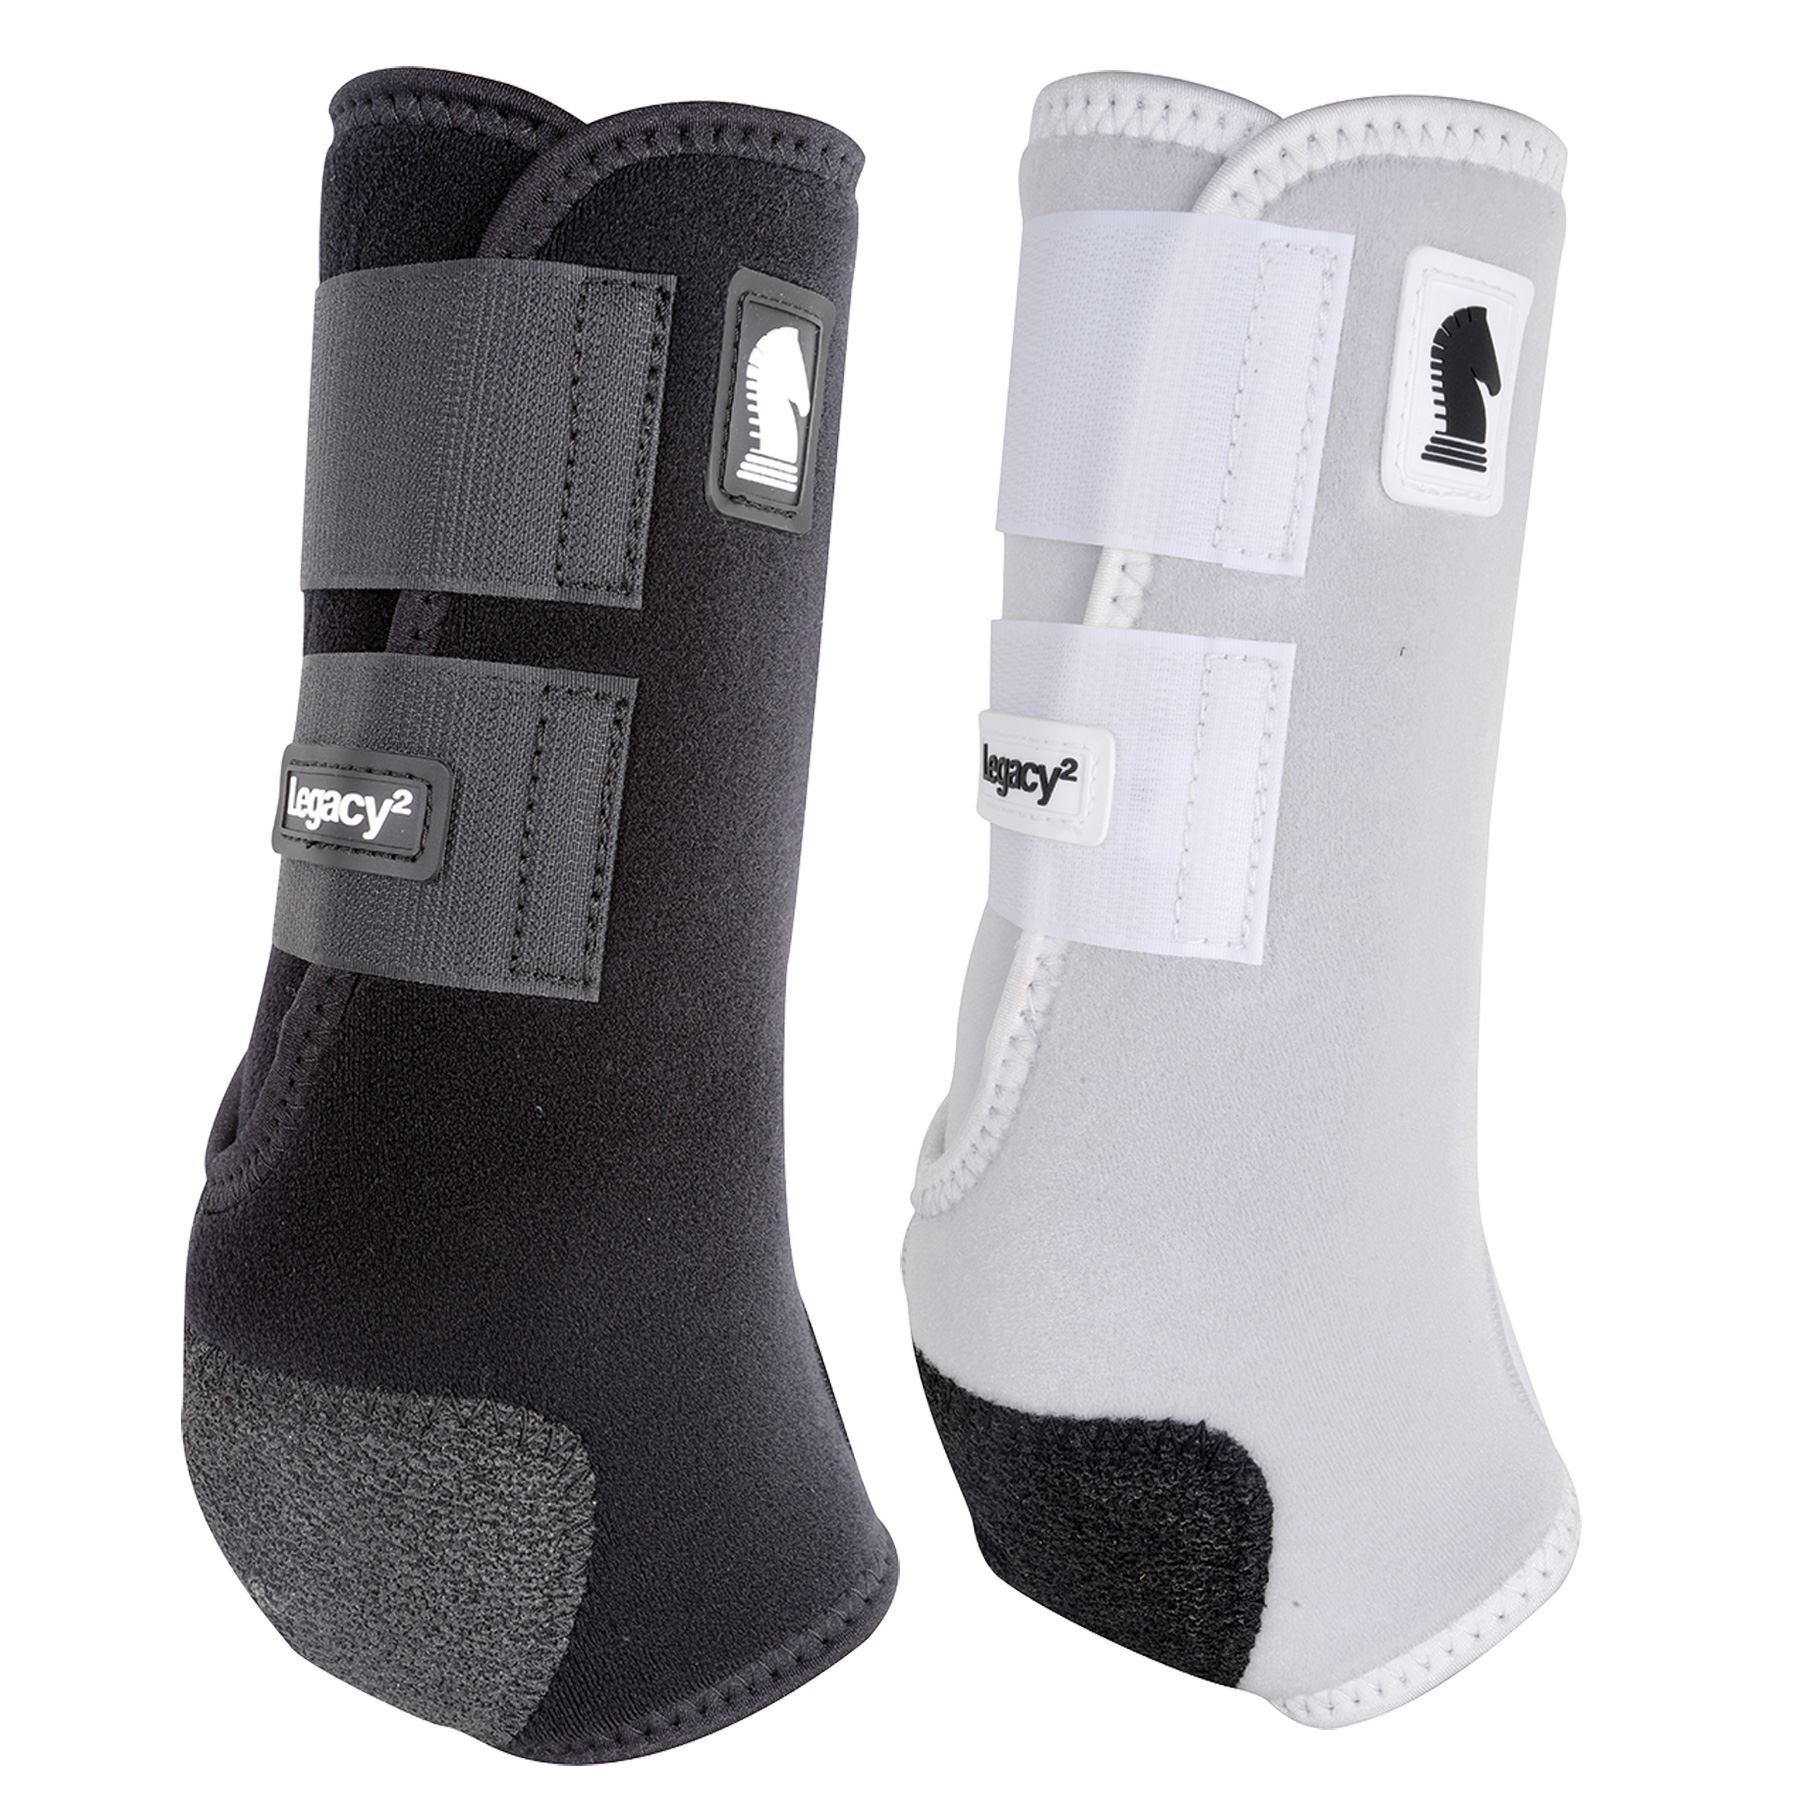 68ce0f389c0b Classic Equine® Legacy2 Hind Support Boots in Horse Boots   Wraps at ...